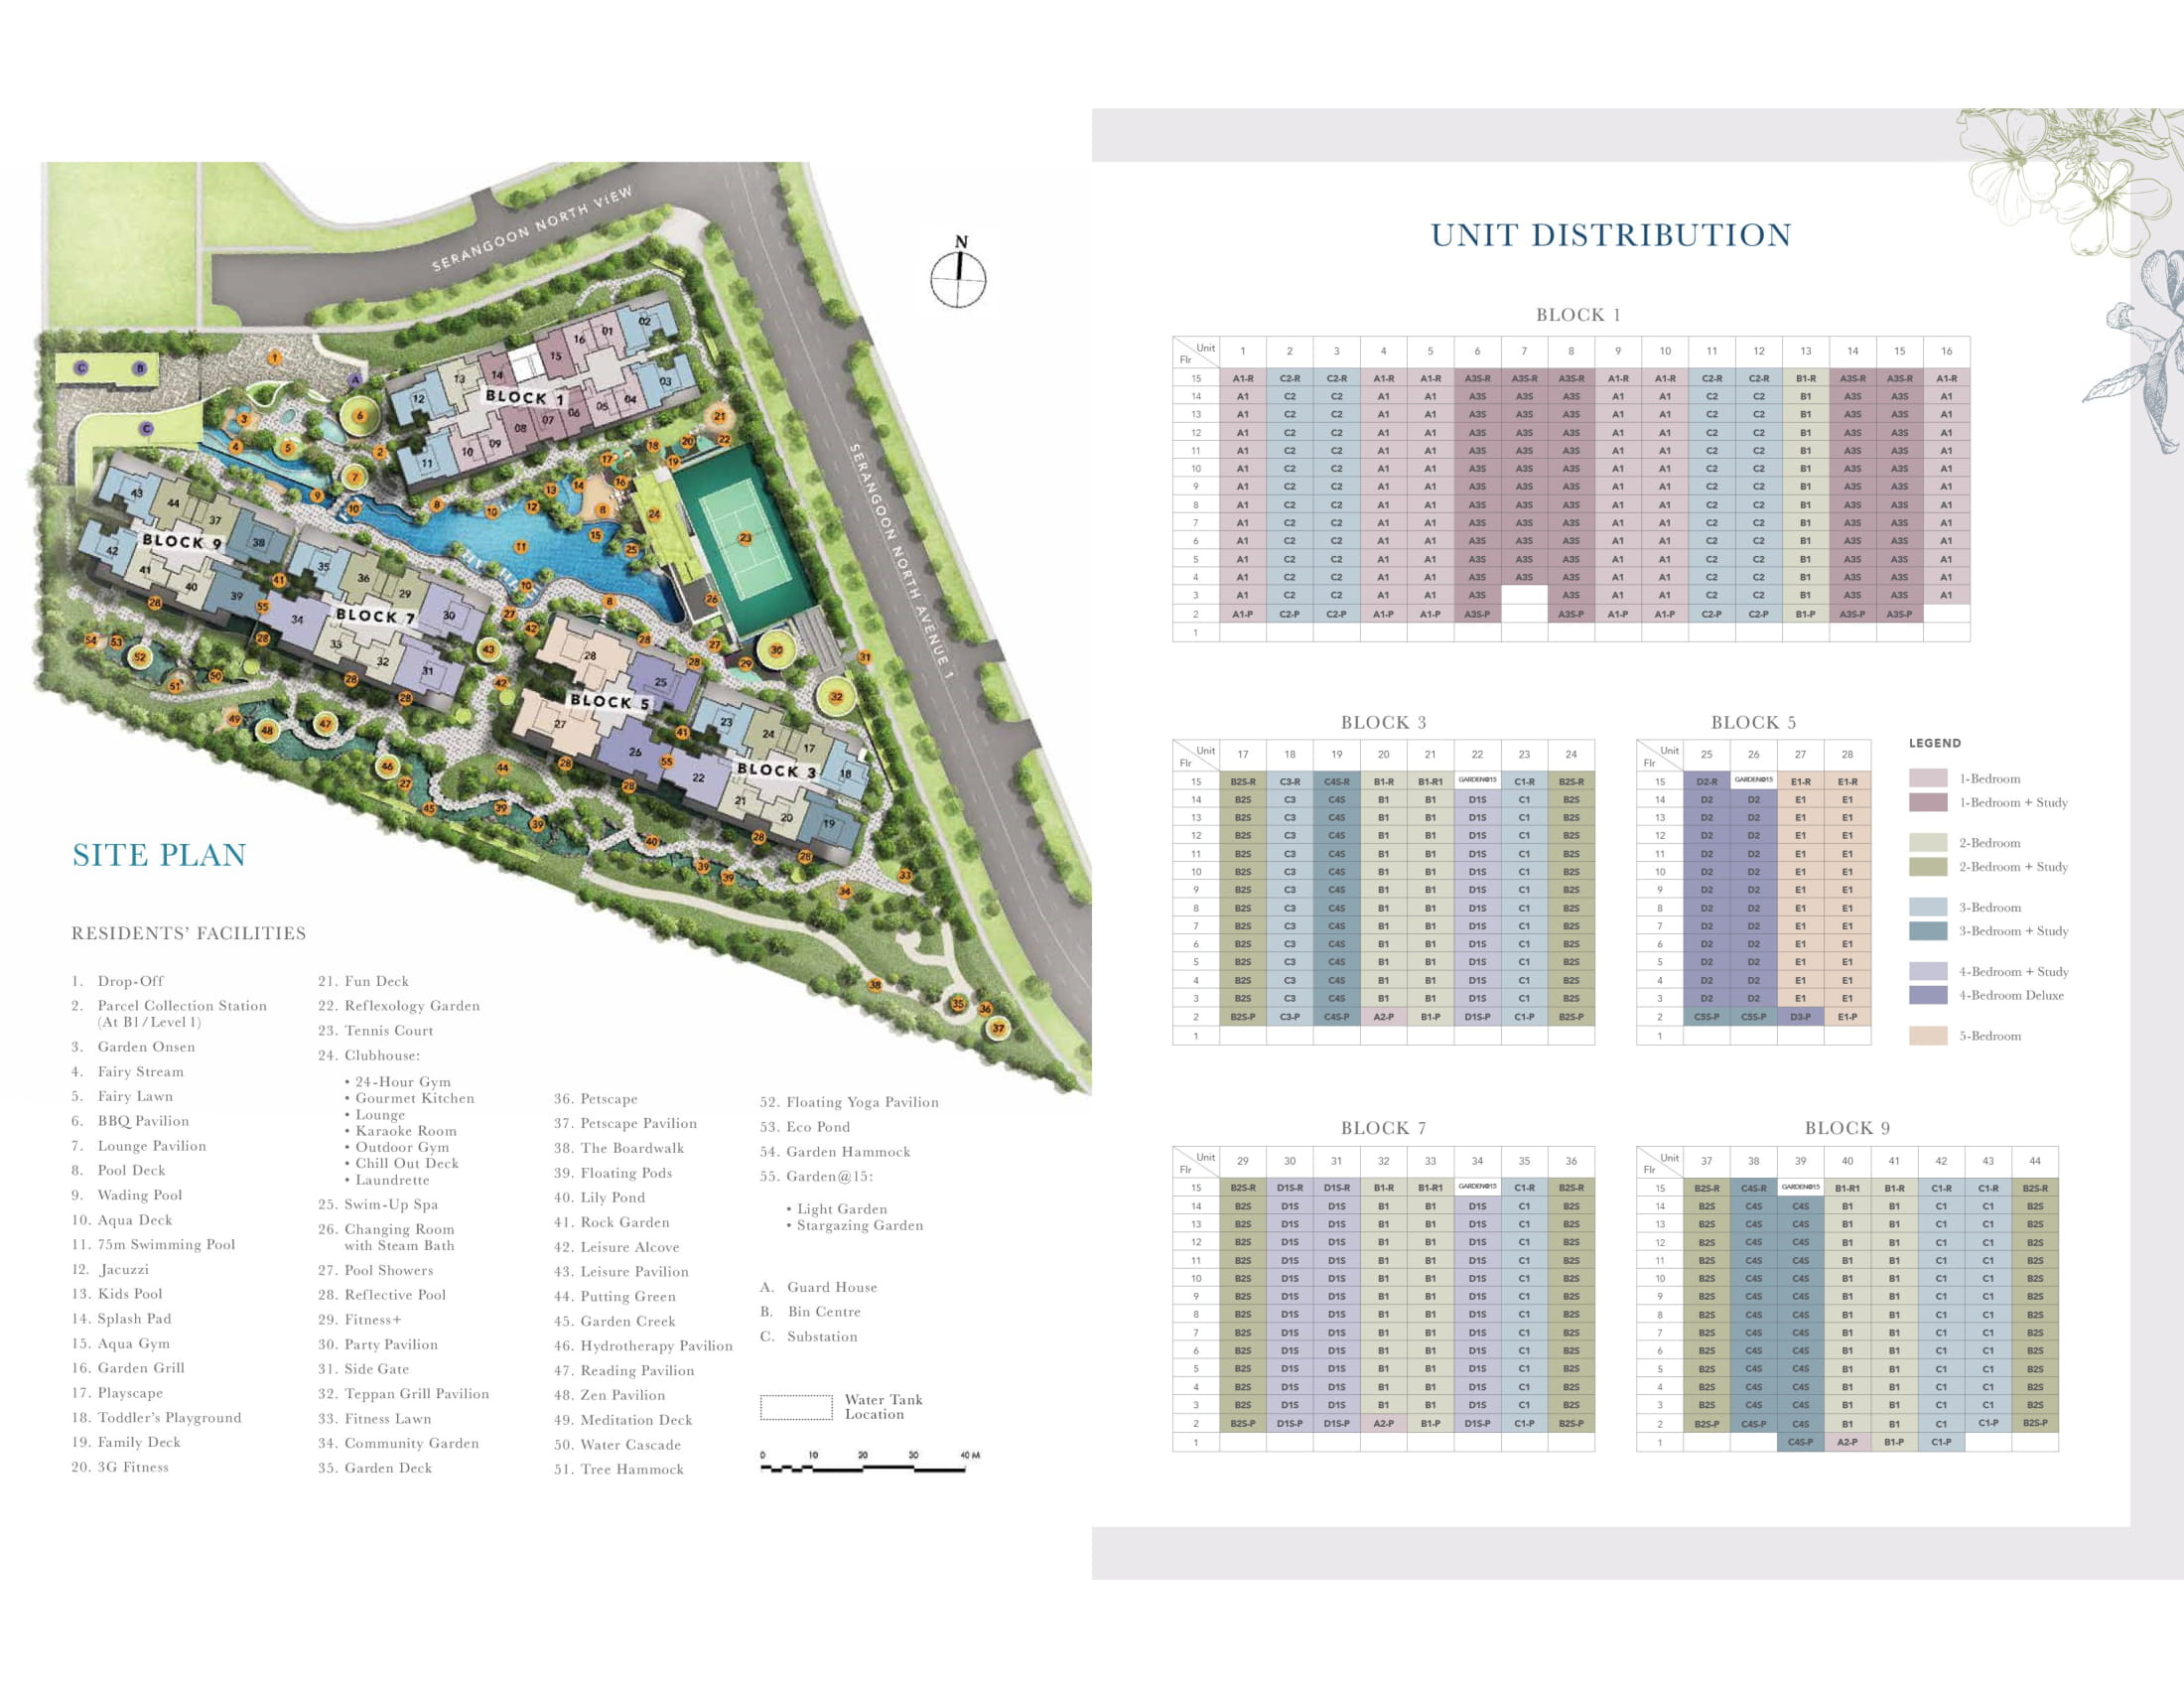 The Garden Residences' site plan and unit distribution